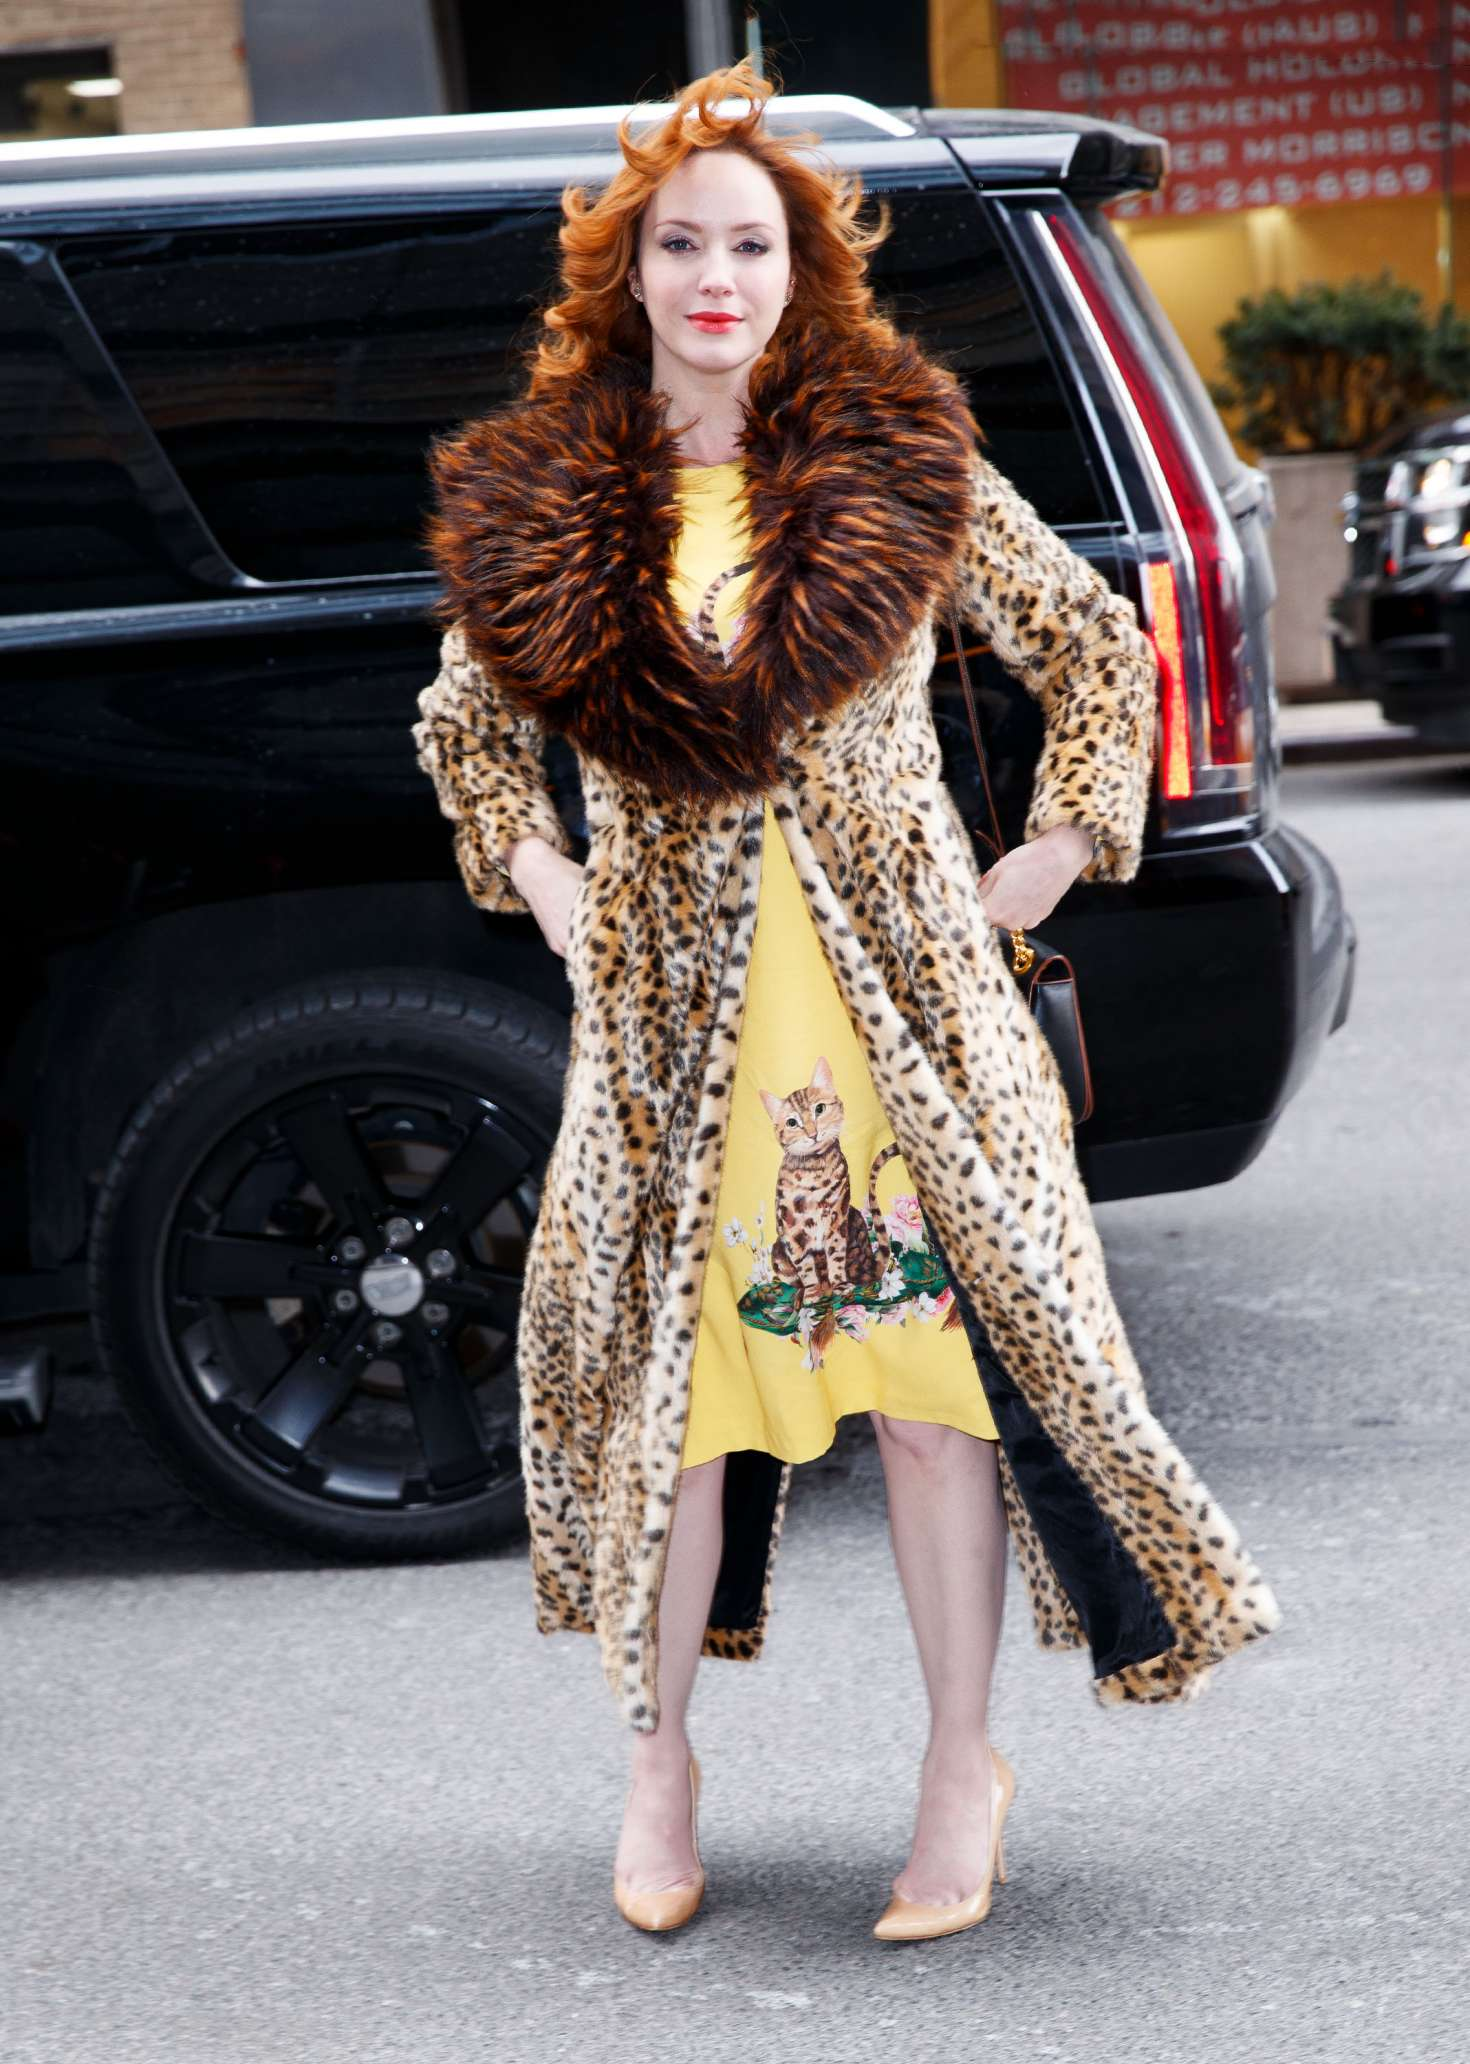 Christina Hendricks In Leopard Print Coat Out In New